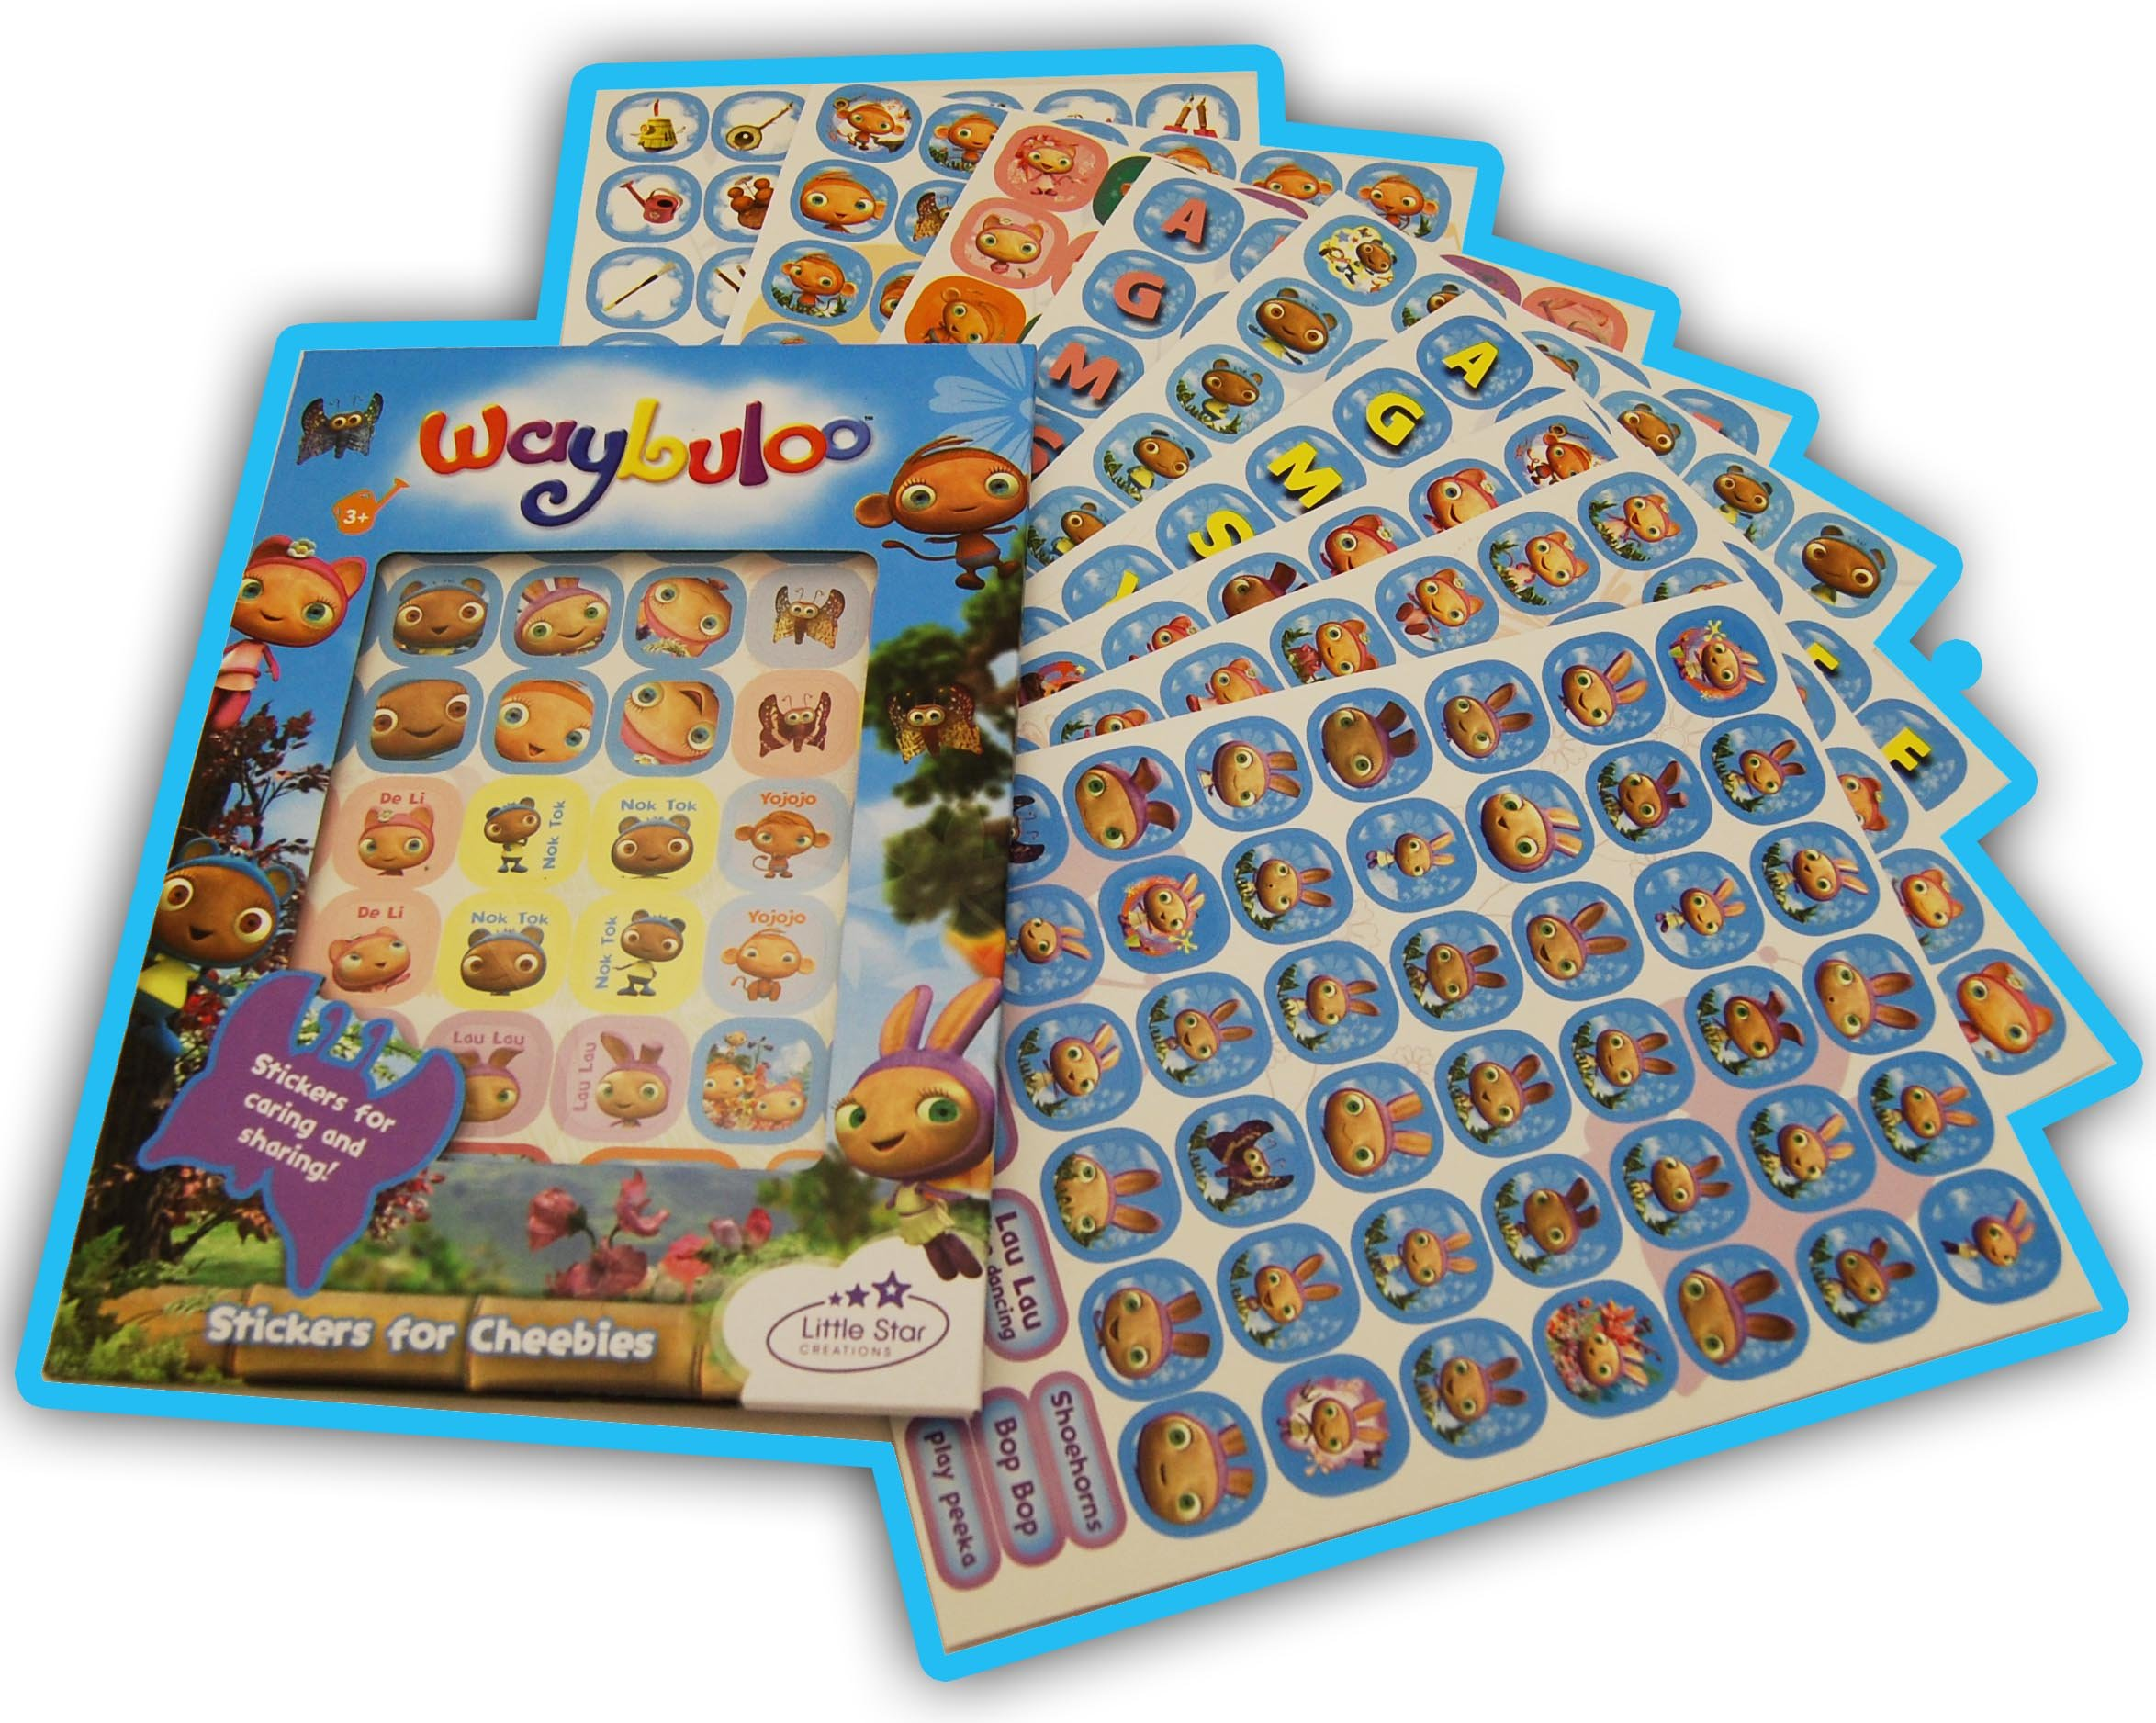 Waybuloo Cheebies Caring And Sharing Stickers Pack Cheebies Piplings De Li Yojojo Lau Lau And Nok Tok Amazon Co Uk 5011874013725 Books